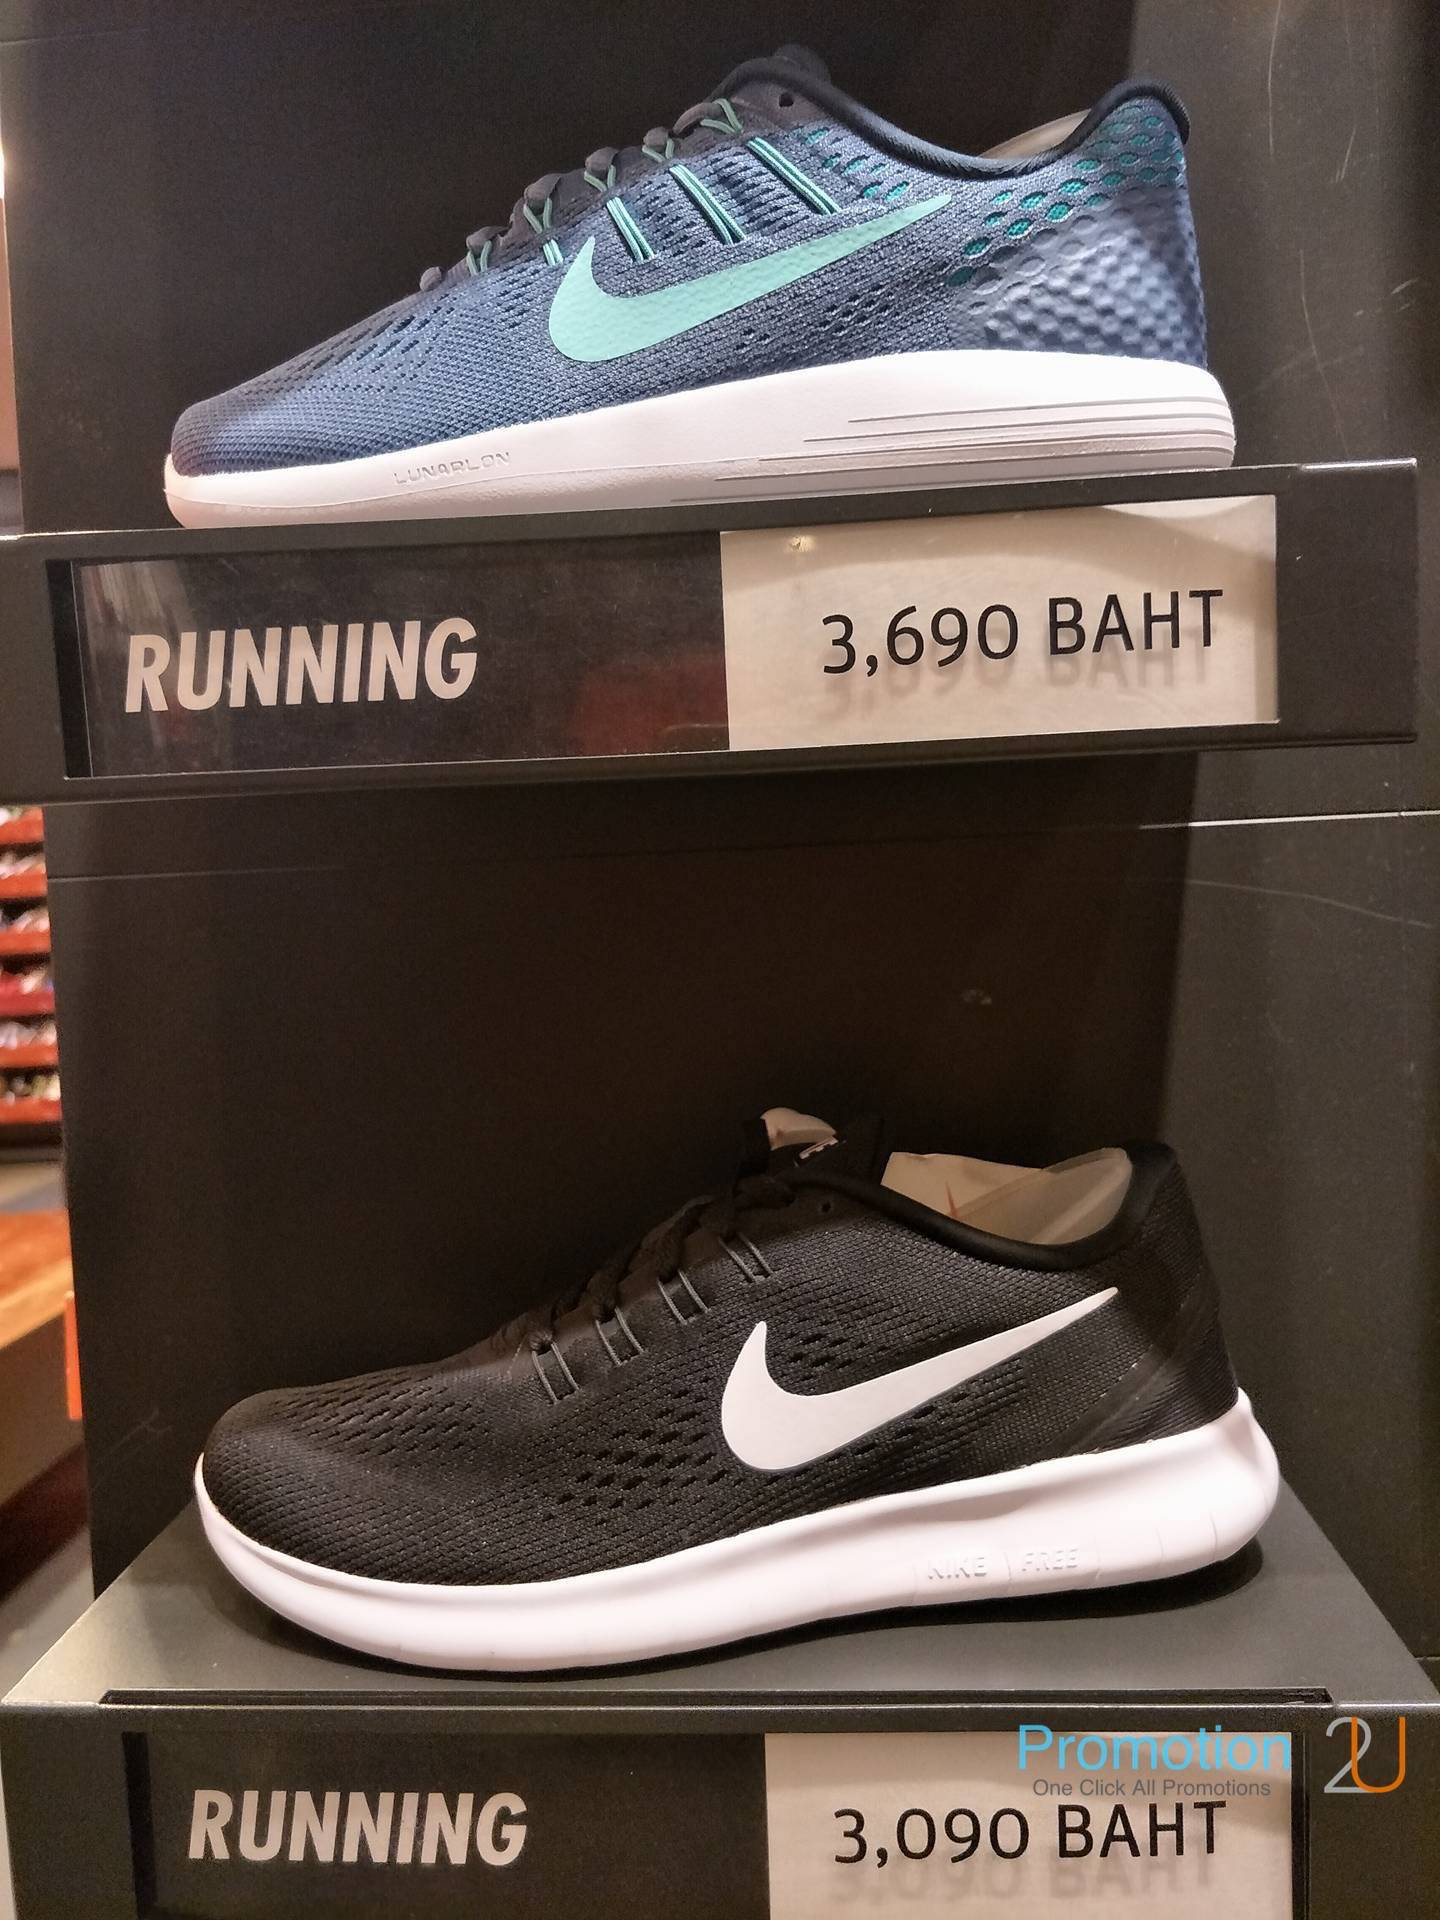 Promotion Nike Outlet Add On 30% For All Items [Oct.2017